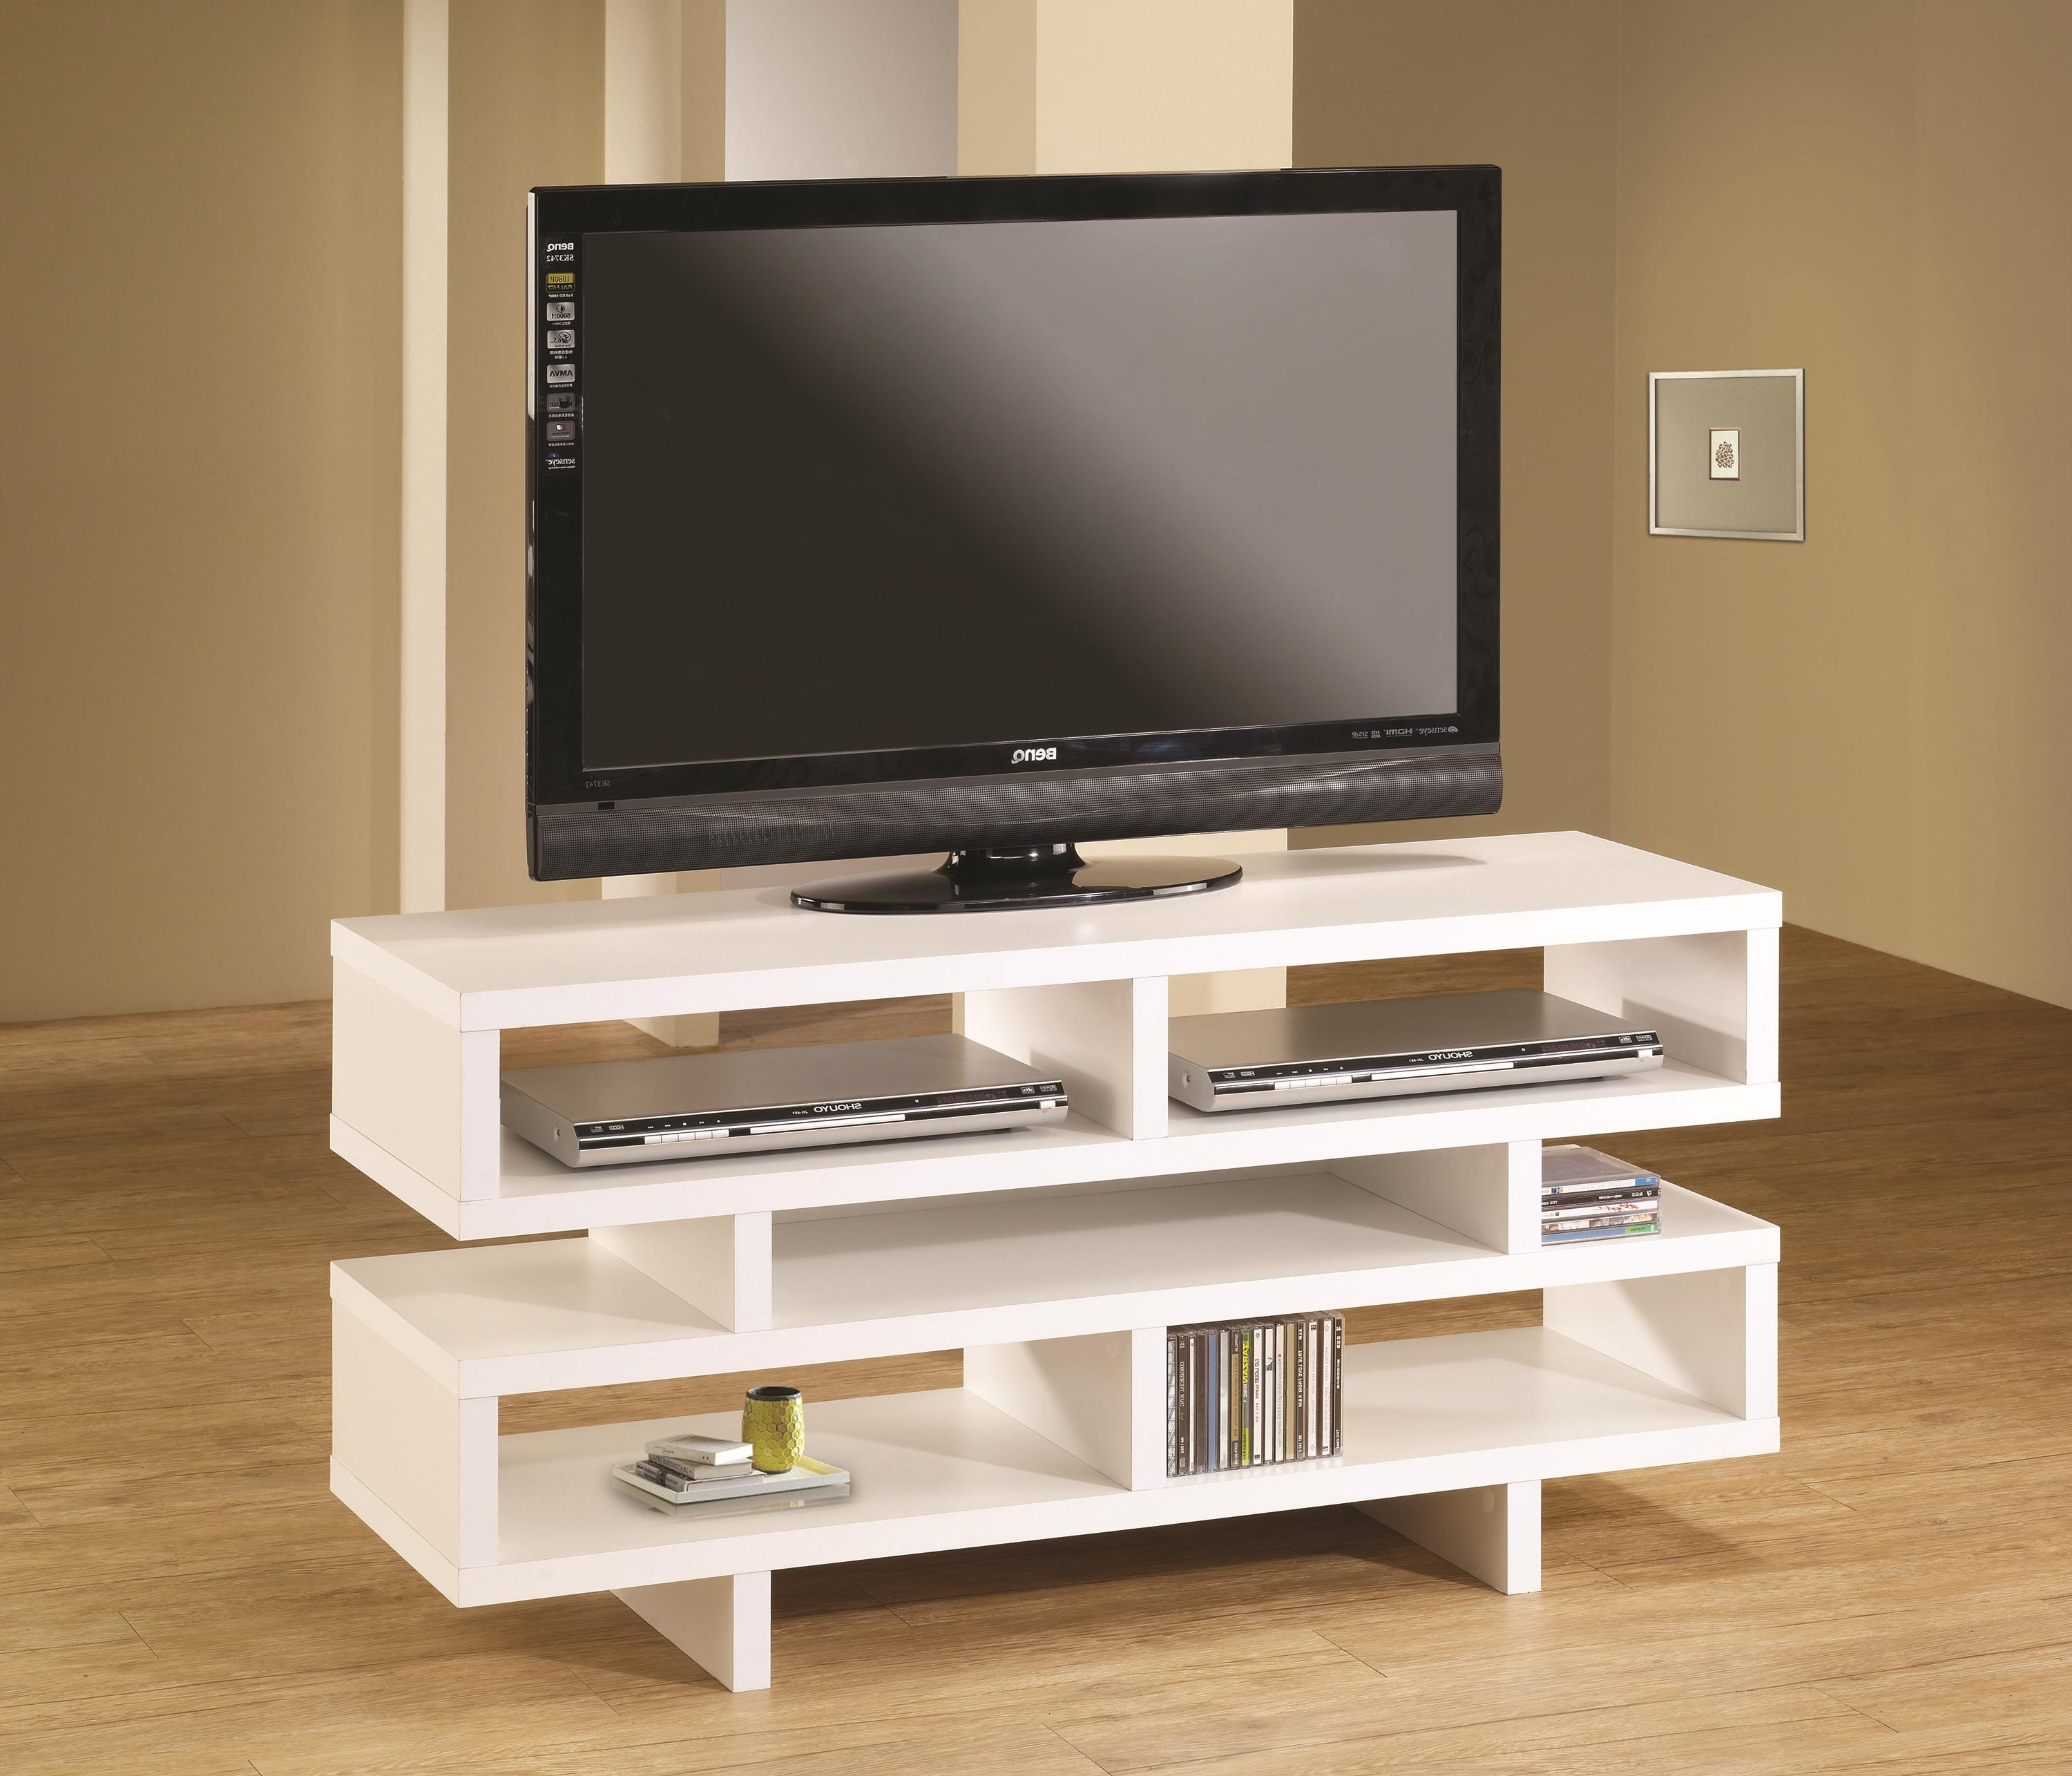 2018 Contemporary White Tv Stands In Coaster Tv Stands Contemporary Tv Console With Open Storage & White (View 17 of 20)